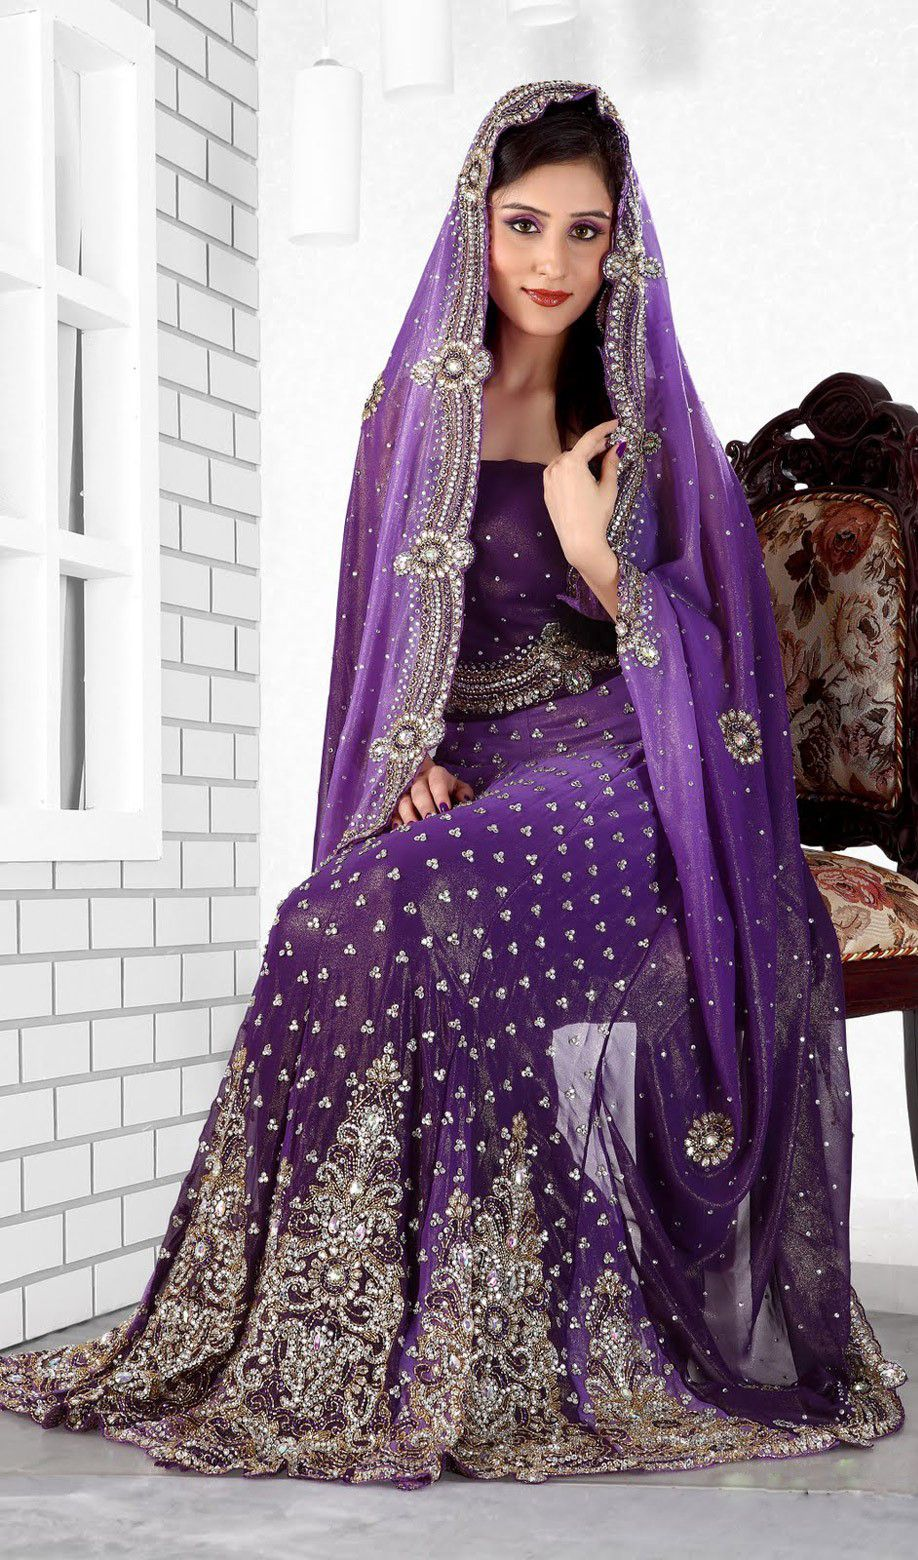 Purple Indian Wedding Dresses 2017 Designers Collection Price Pictures Shared Here These Latest In Colors Are The Fashion